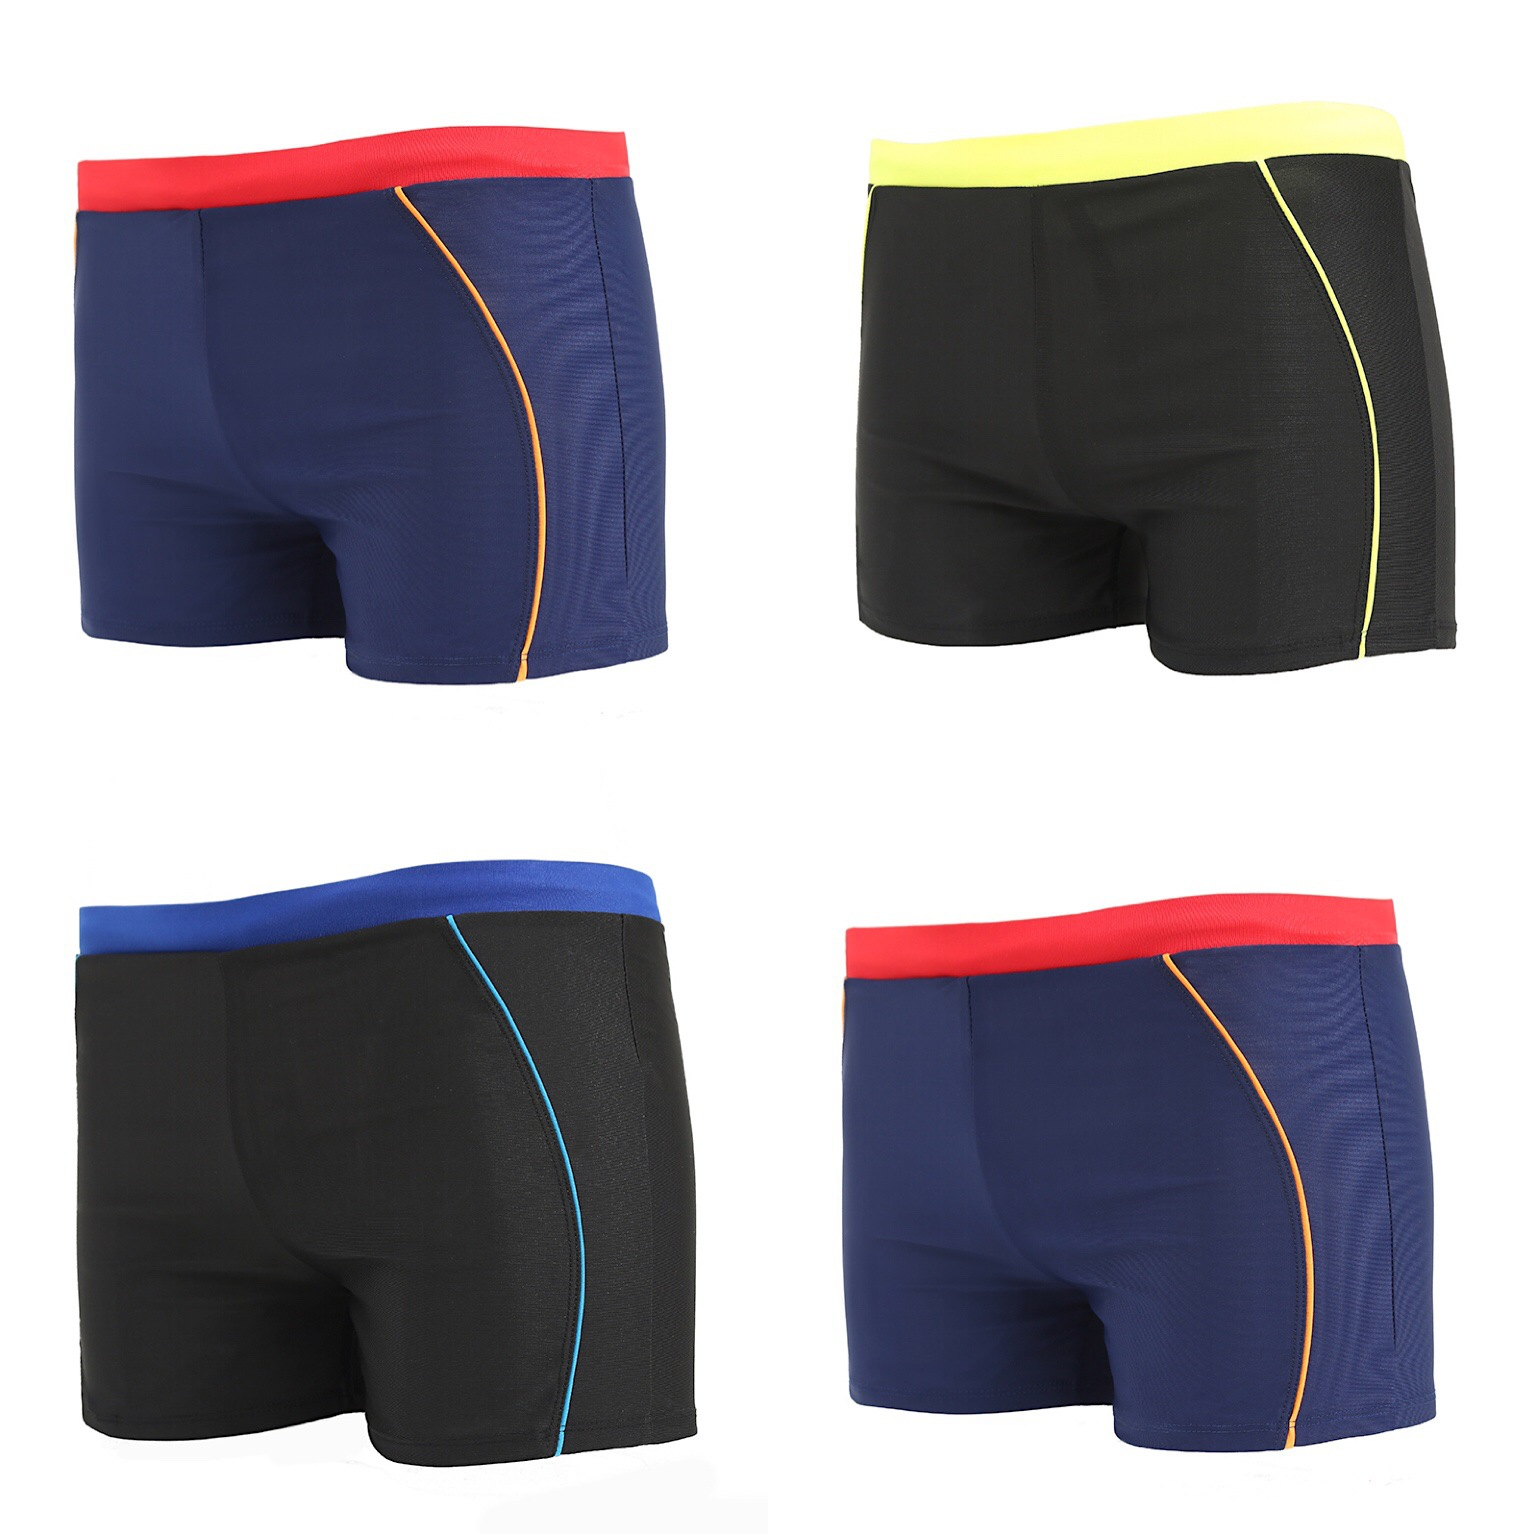 Trend MEN'S Swimming Trunks Fashion & Sports Students Boxers Game Training Elasticity Swimming Trunks Men's